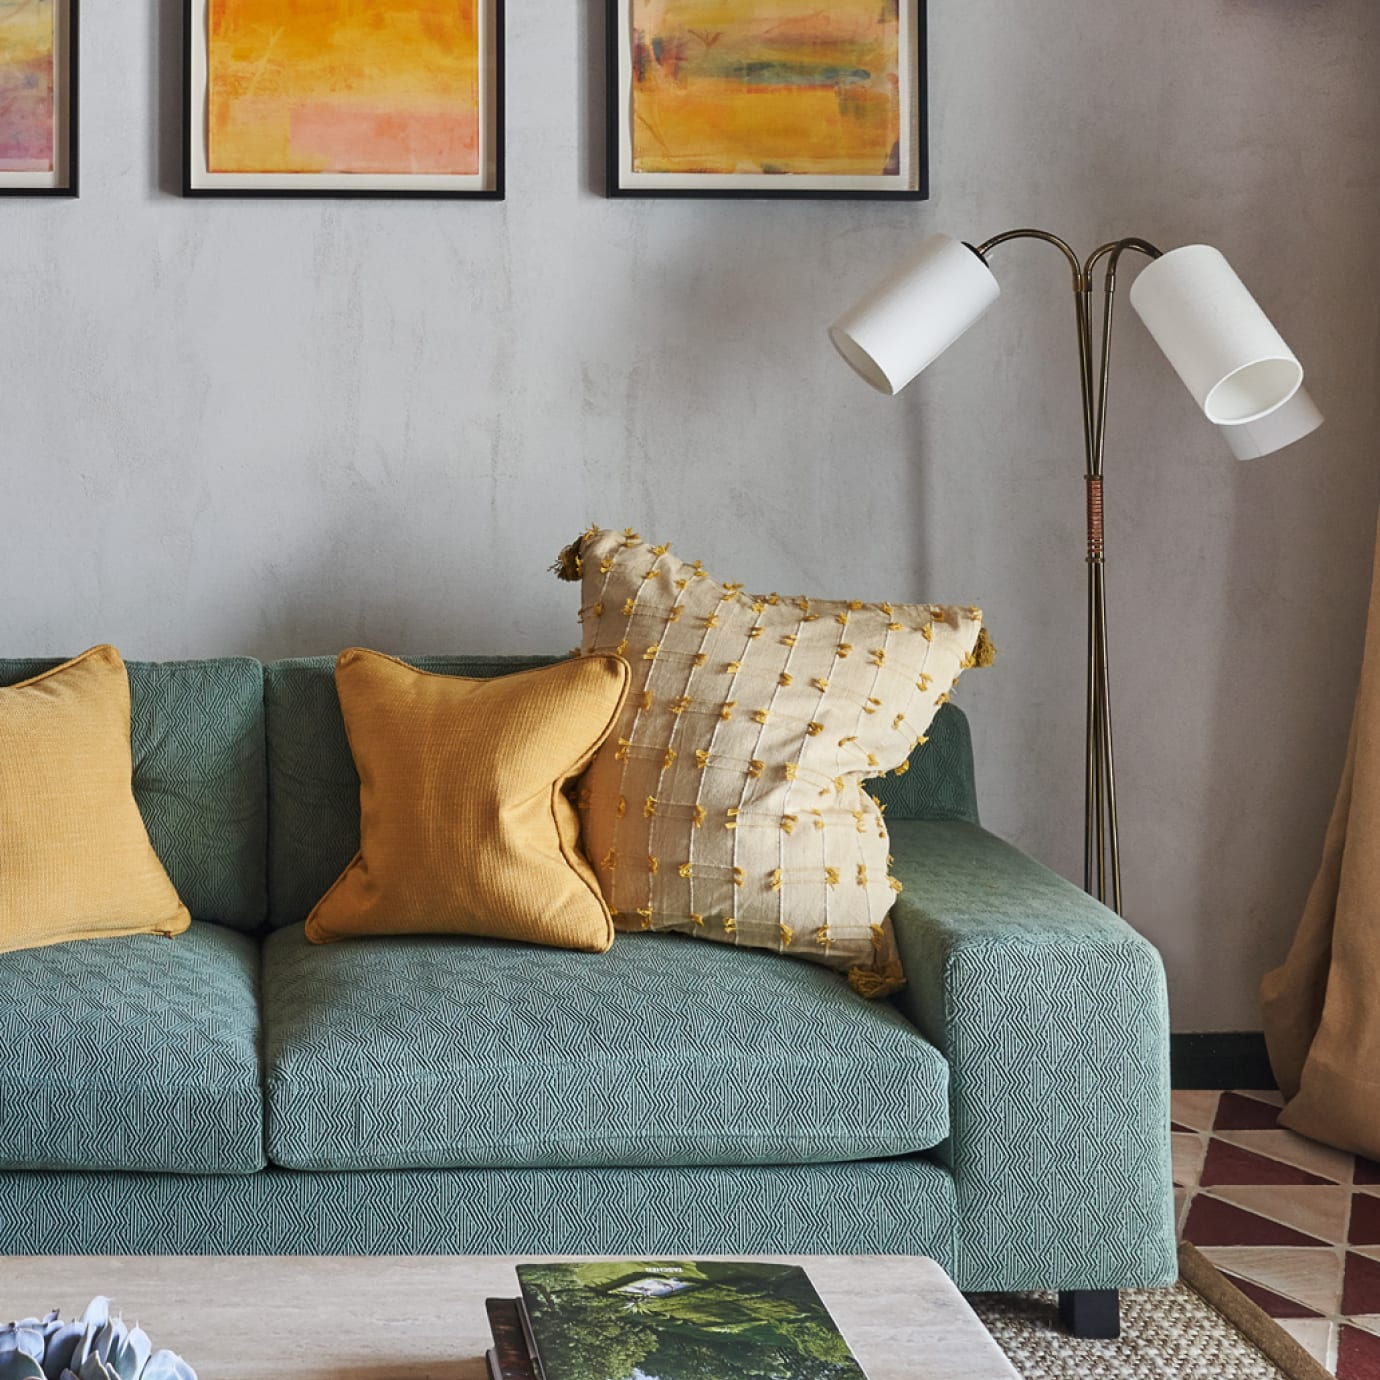 A blue sofa with cushions next to a floor lamp.